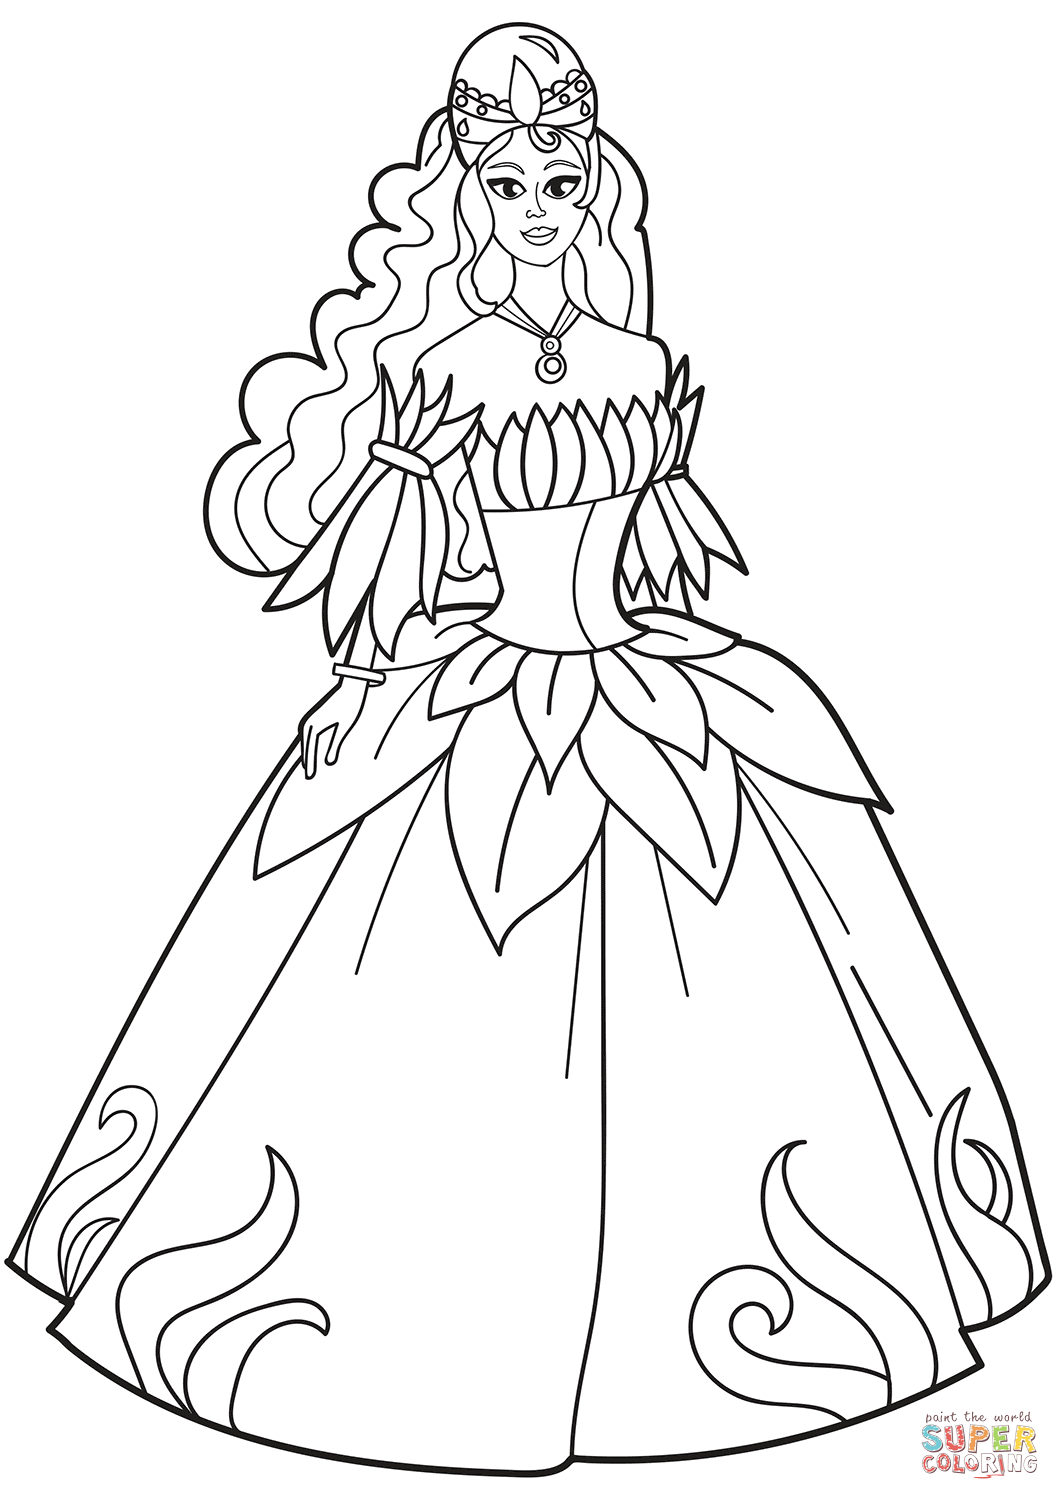 Princess In Flower Dress Coloring Page Free Printable Coloring Pages